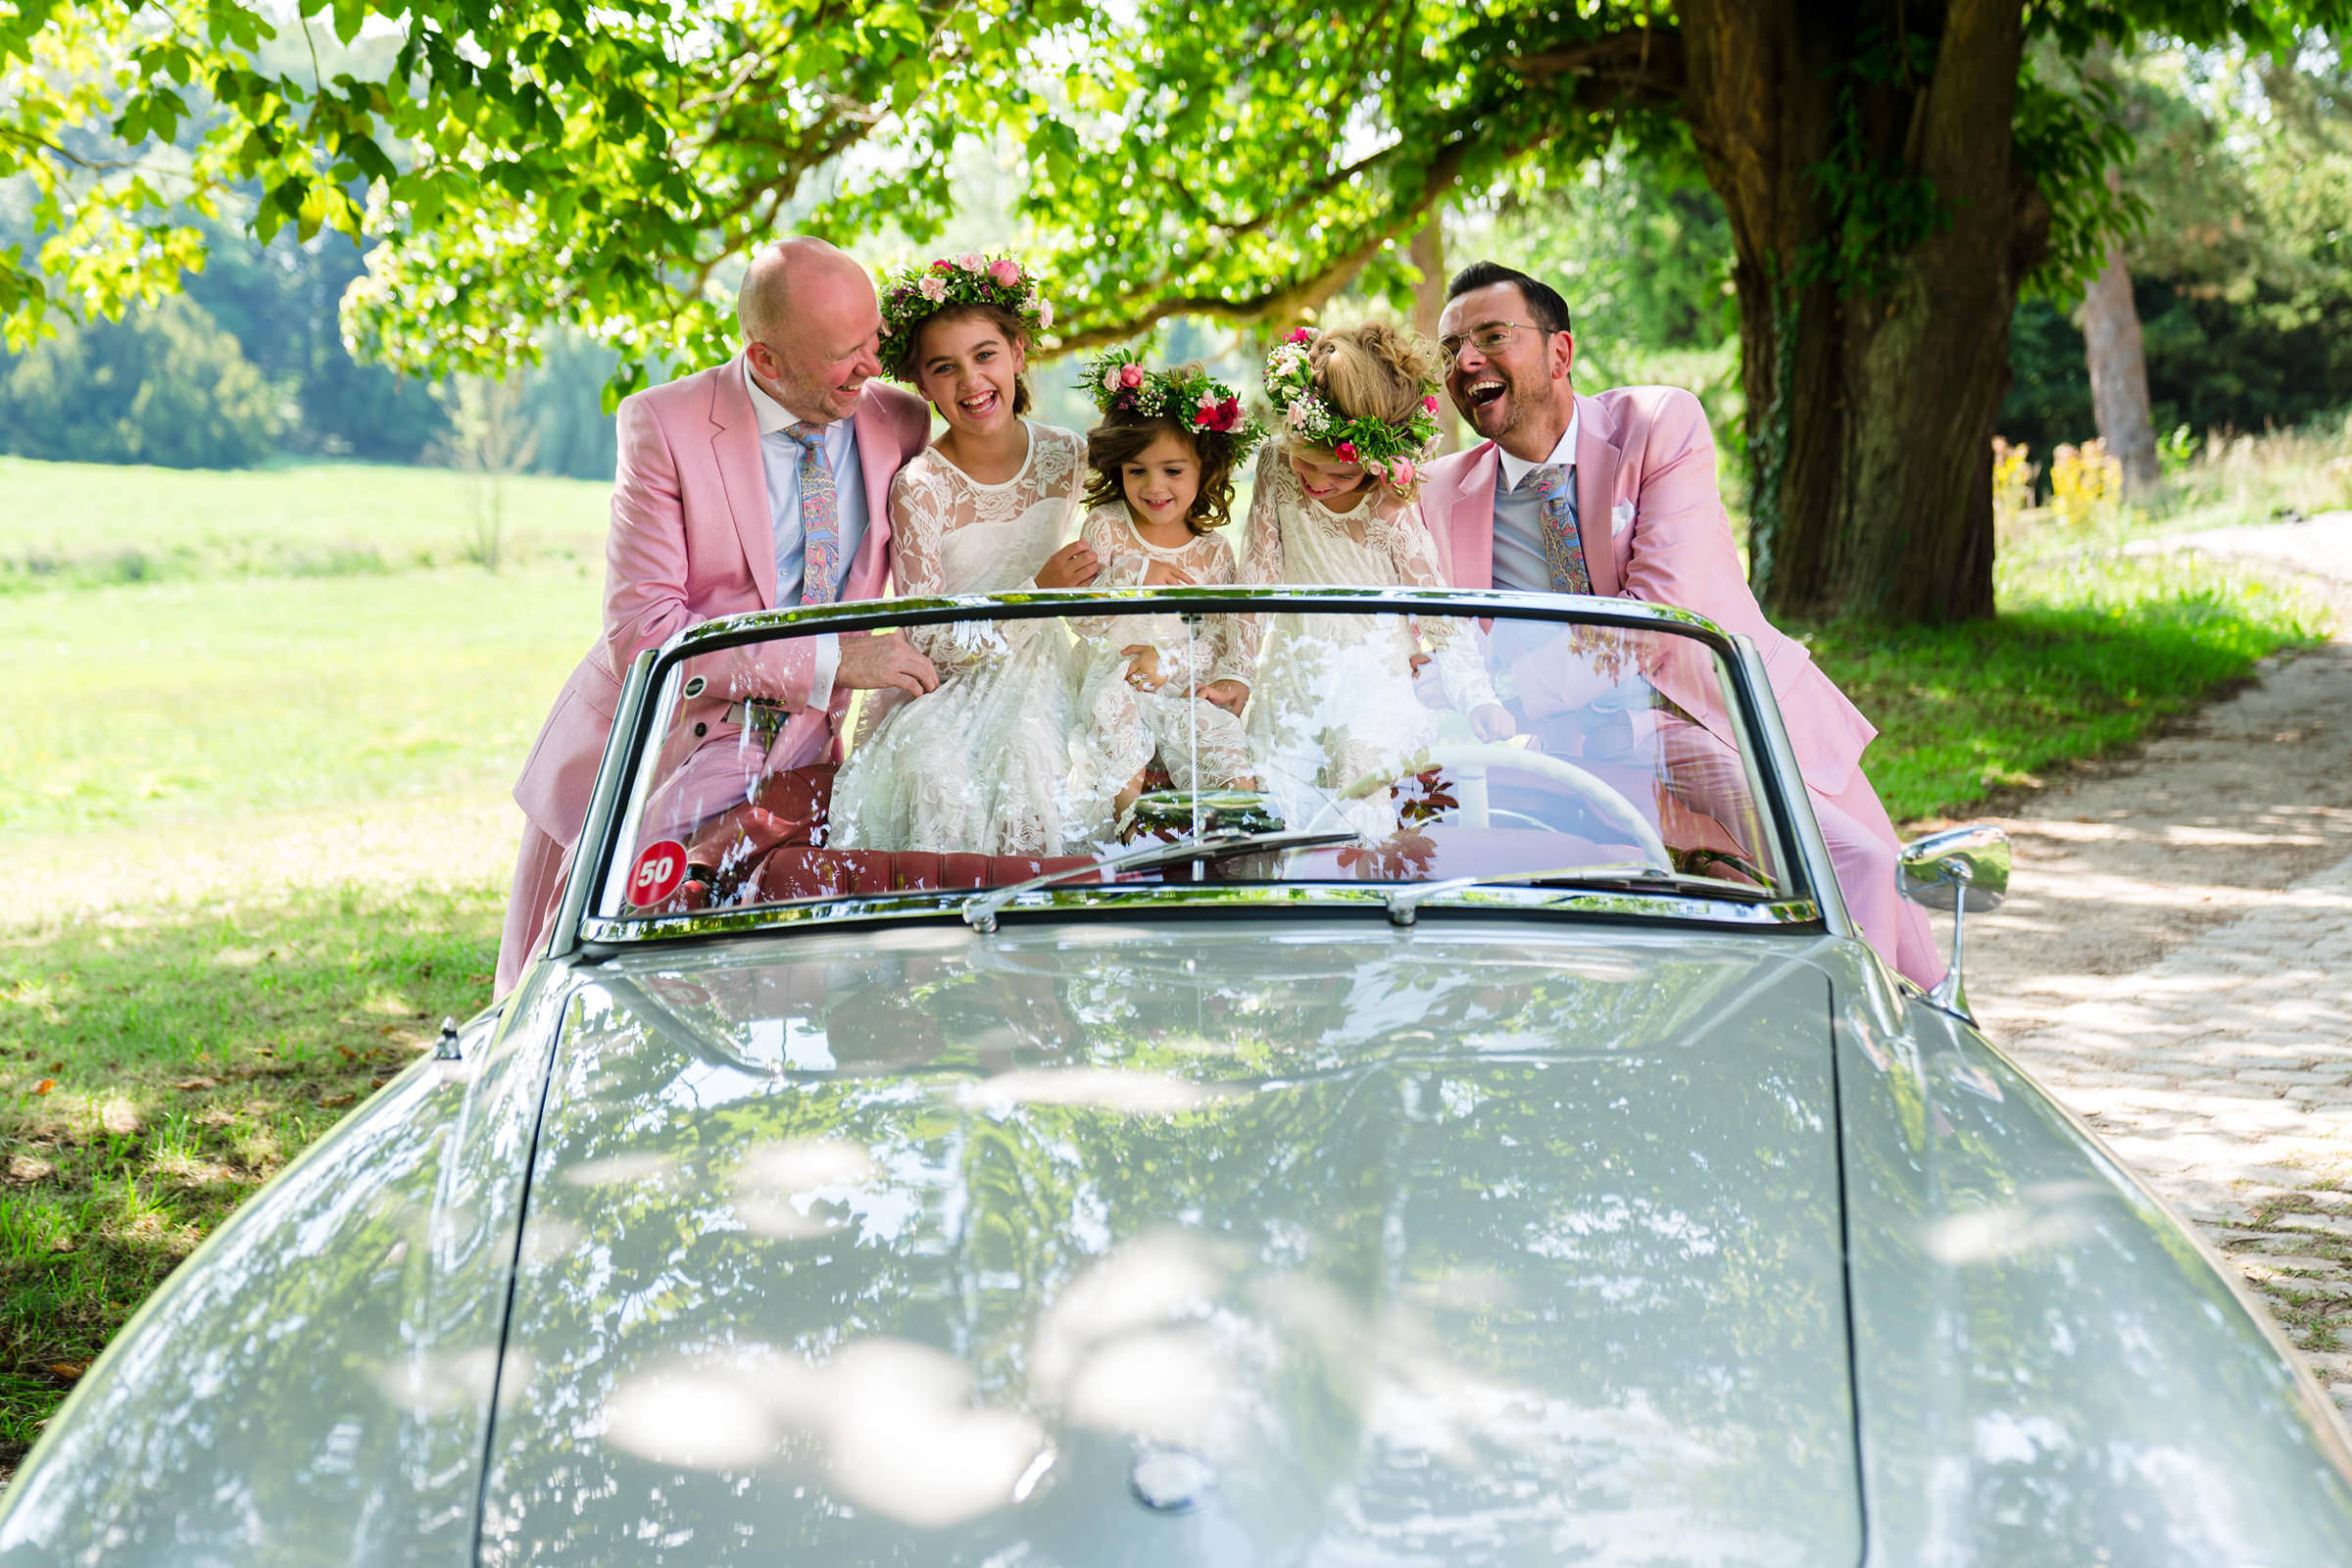 grooms-and-flower-girls-in-convertible-worlds-best-wedding-photos-by-philippe-swiggers